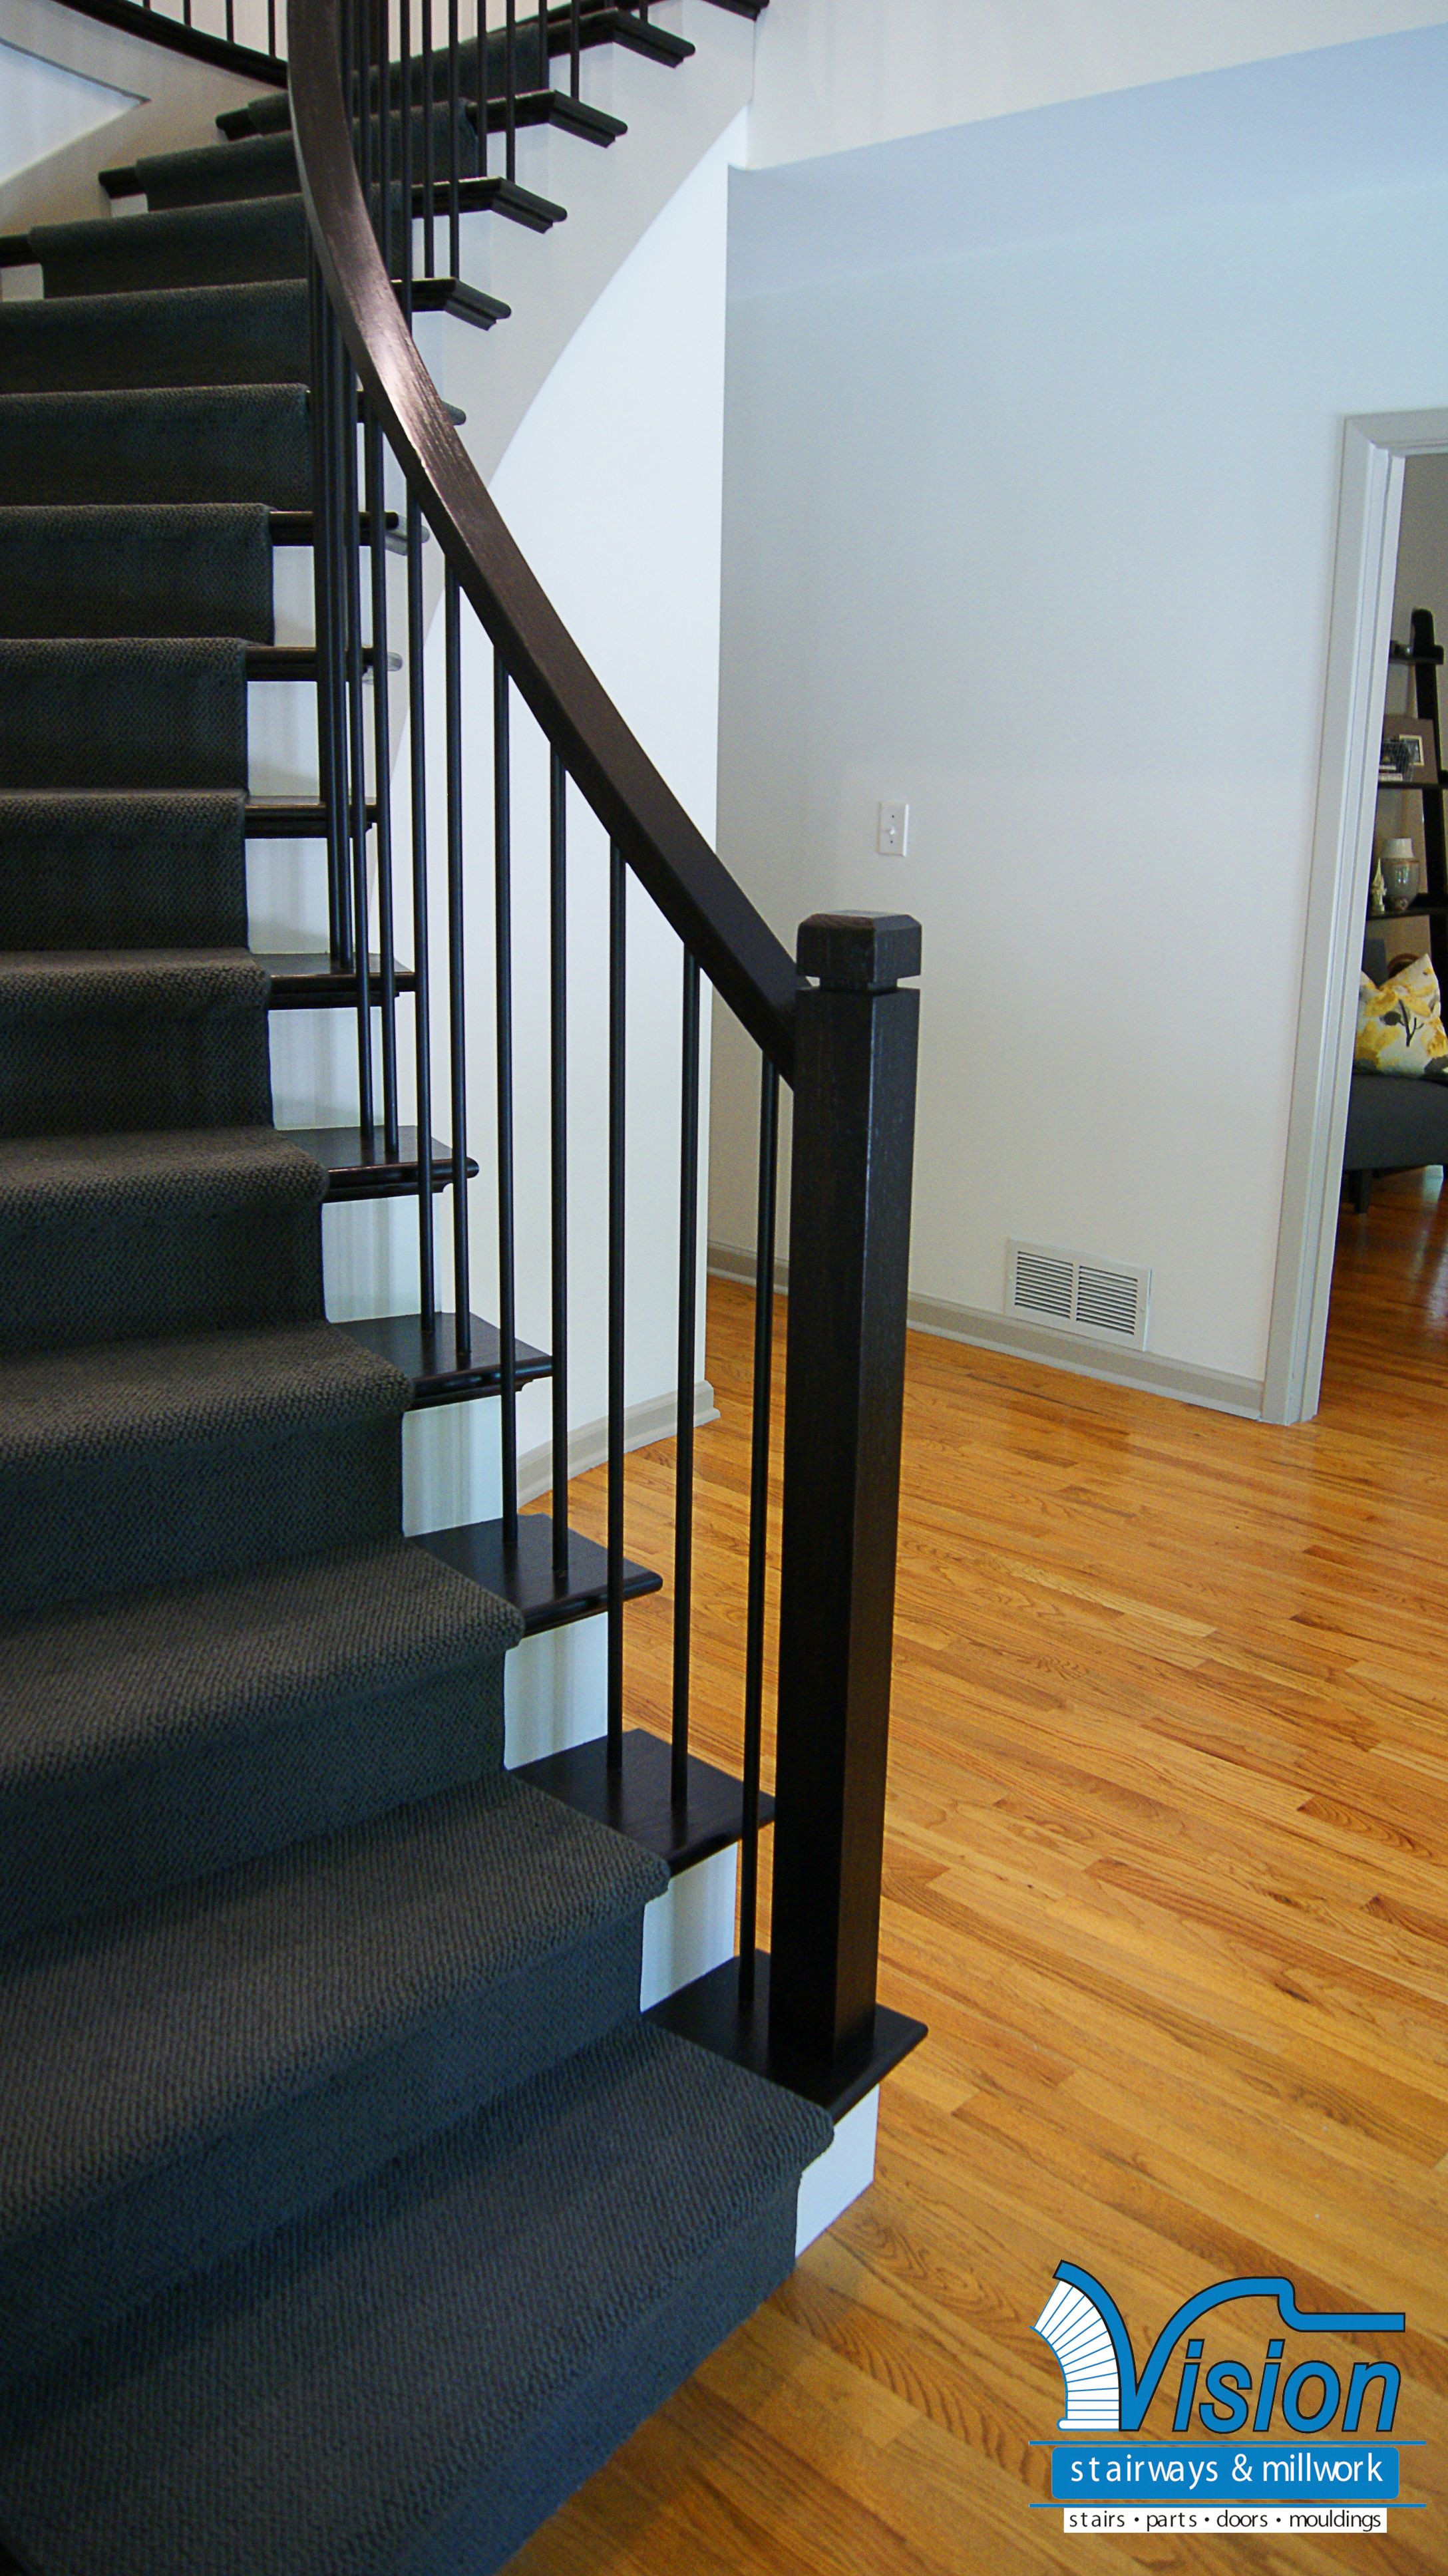 discount hardwood flooring knoxville tn of curved staircase with iron railing and balusters with ebony stained for curved staircase with iron railing and balusters with ebony stained wooden newels and return treads